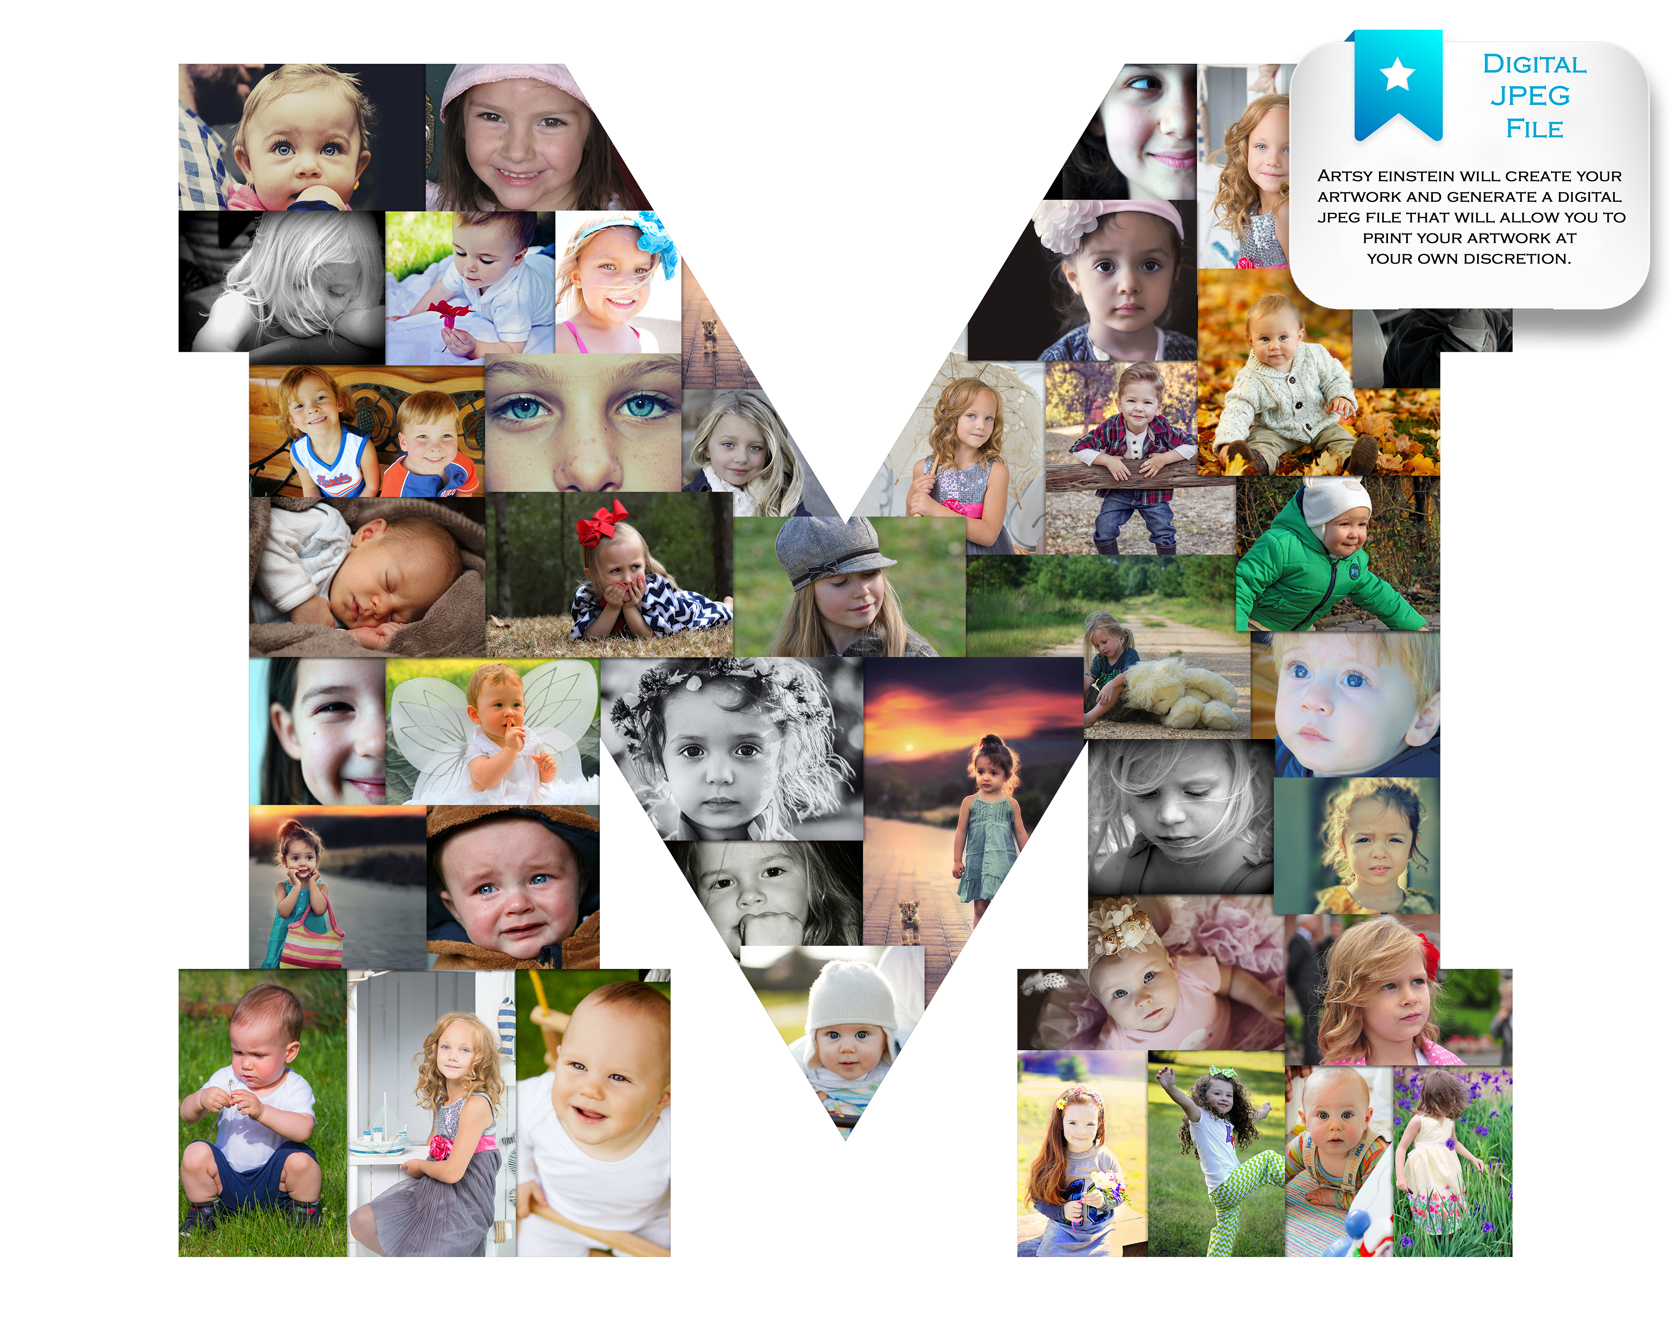 Letter Photo Collage Premium Hand Crafted Photo Collages Artsy - Online Collage Maker With Text